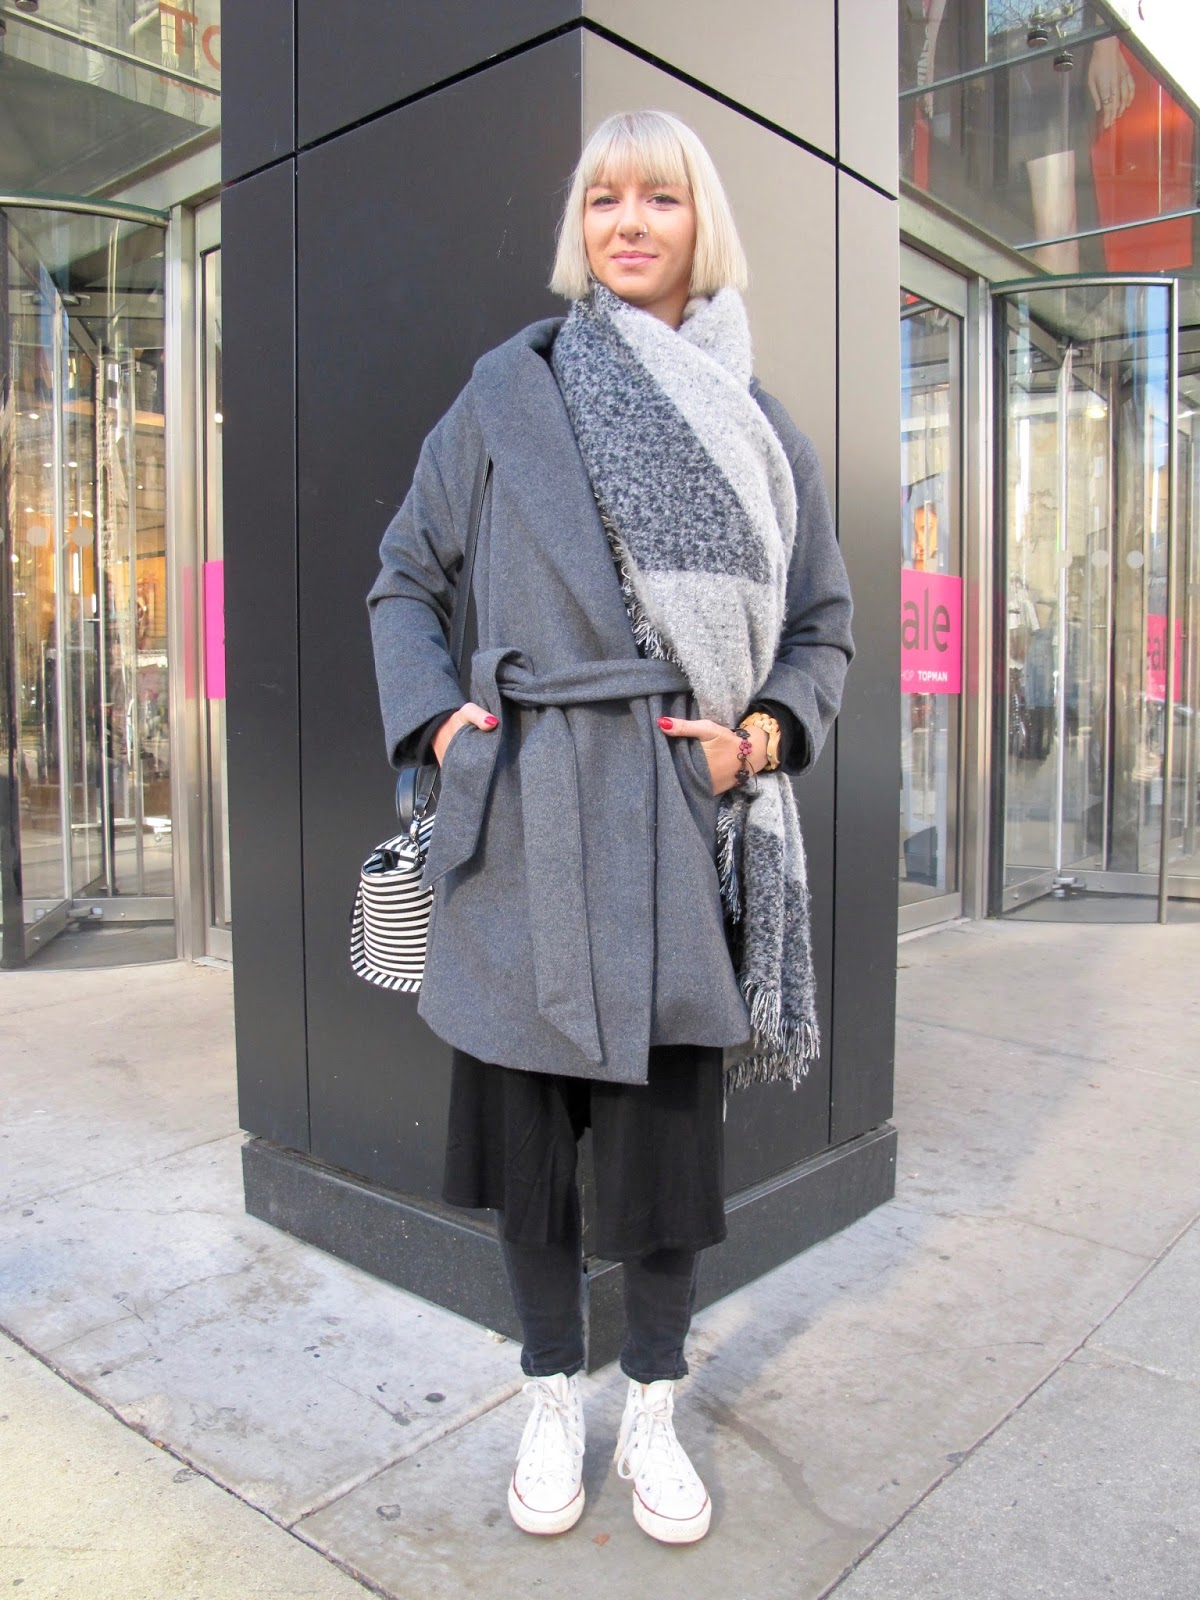 Monika chicago looks a chicago street style fashion blog Grace fashion style chicago